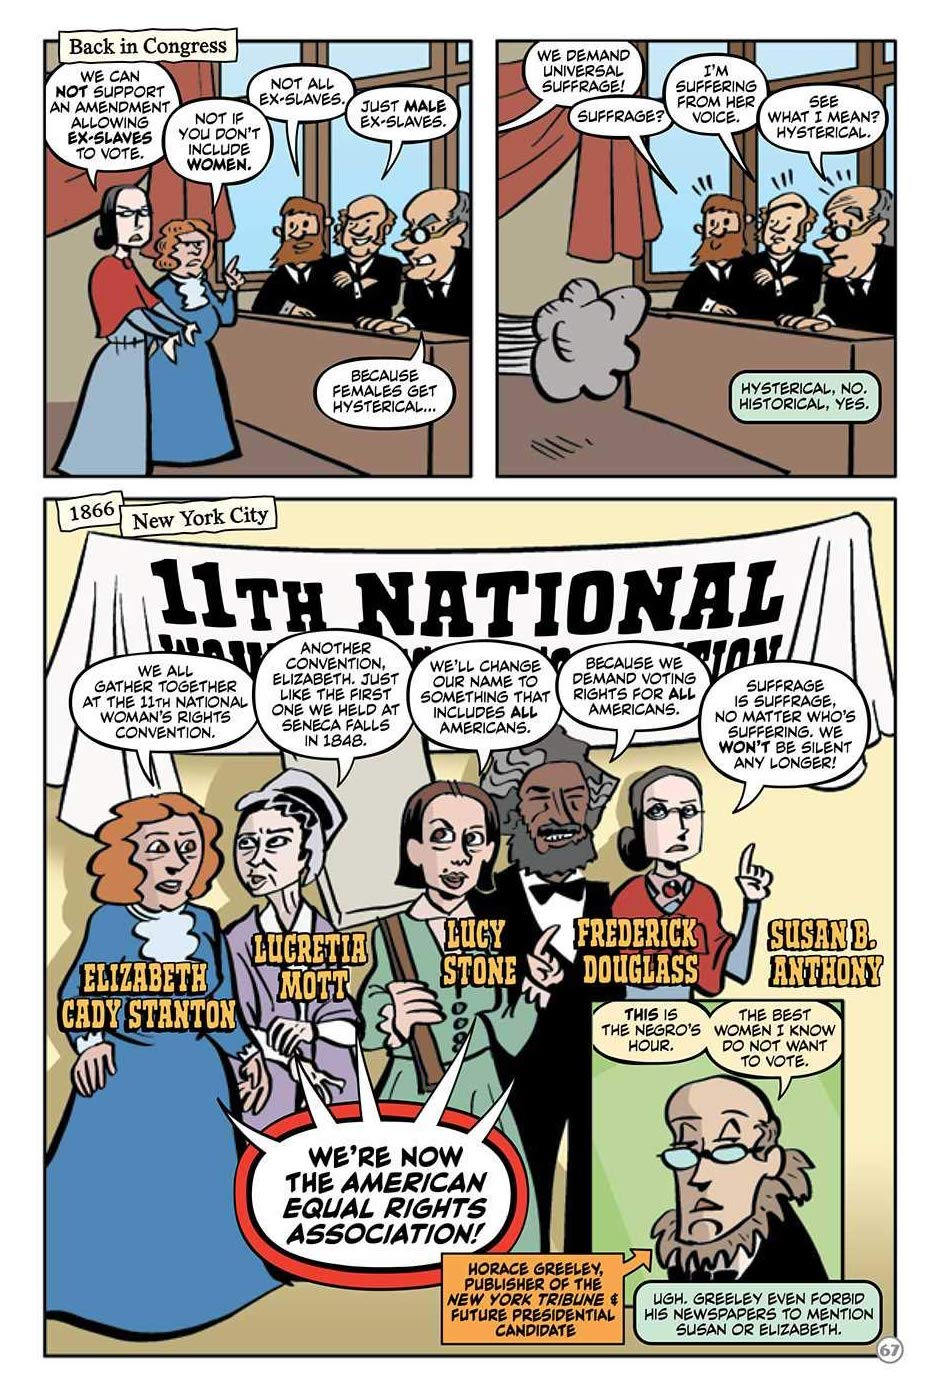 Panel from Susan B. Anthony: Champion for Voting Rights! showing the gathering of the 11th National Women's Rights Convention